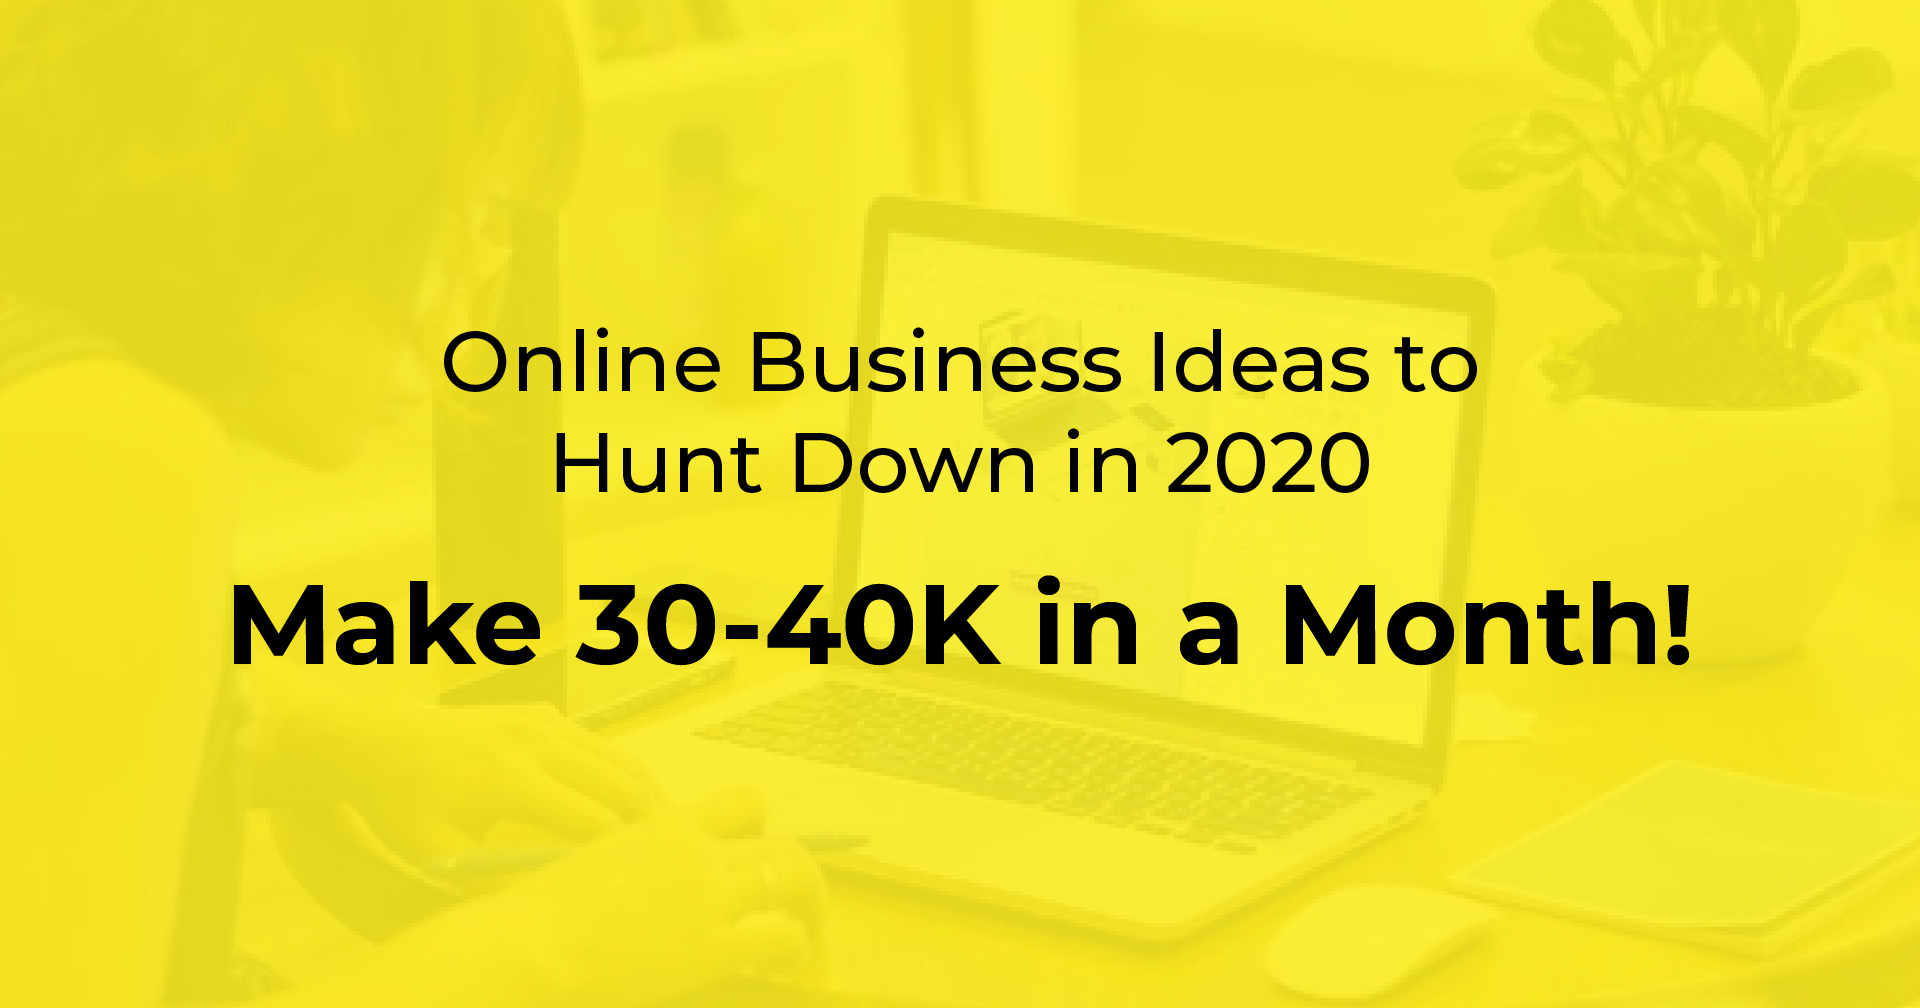 Online Business Ideas to Hunt Down in 2020 | Make 30-40K in a Month!